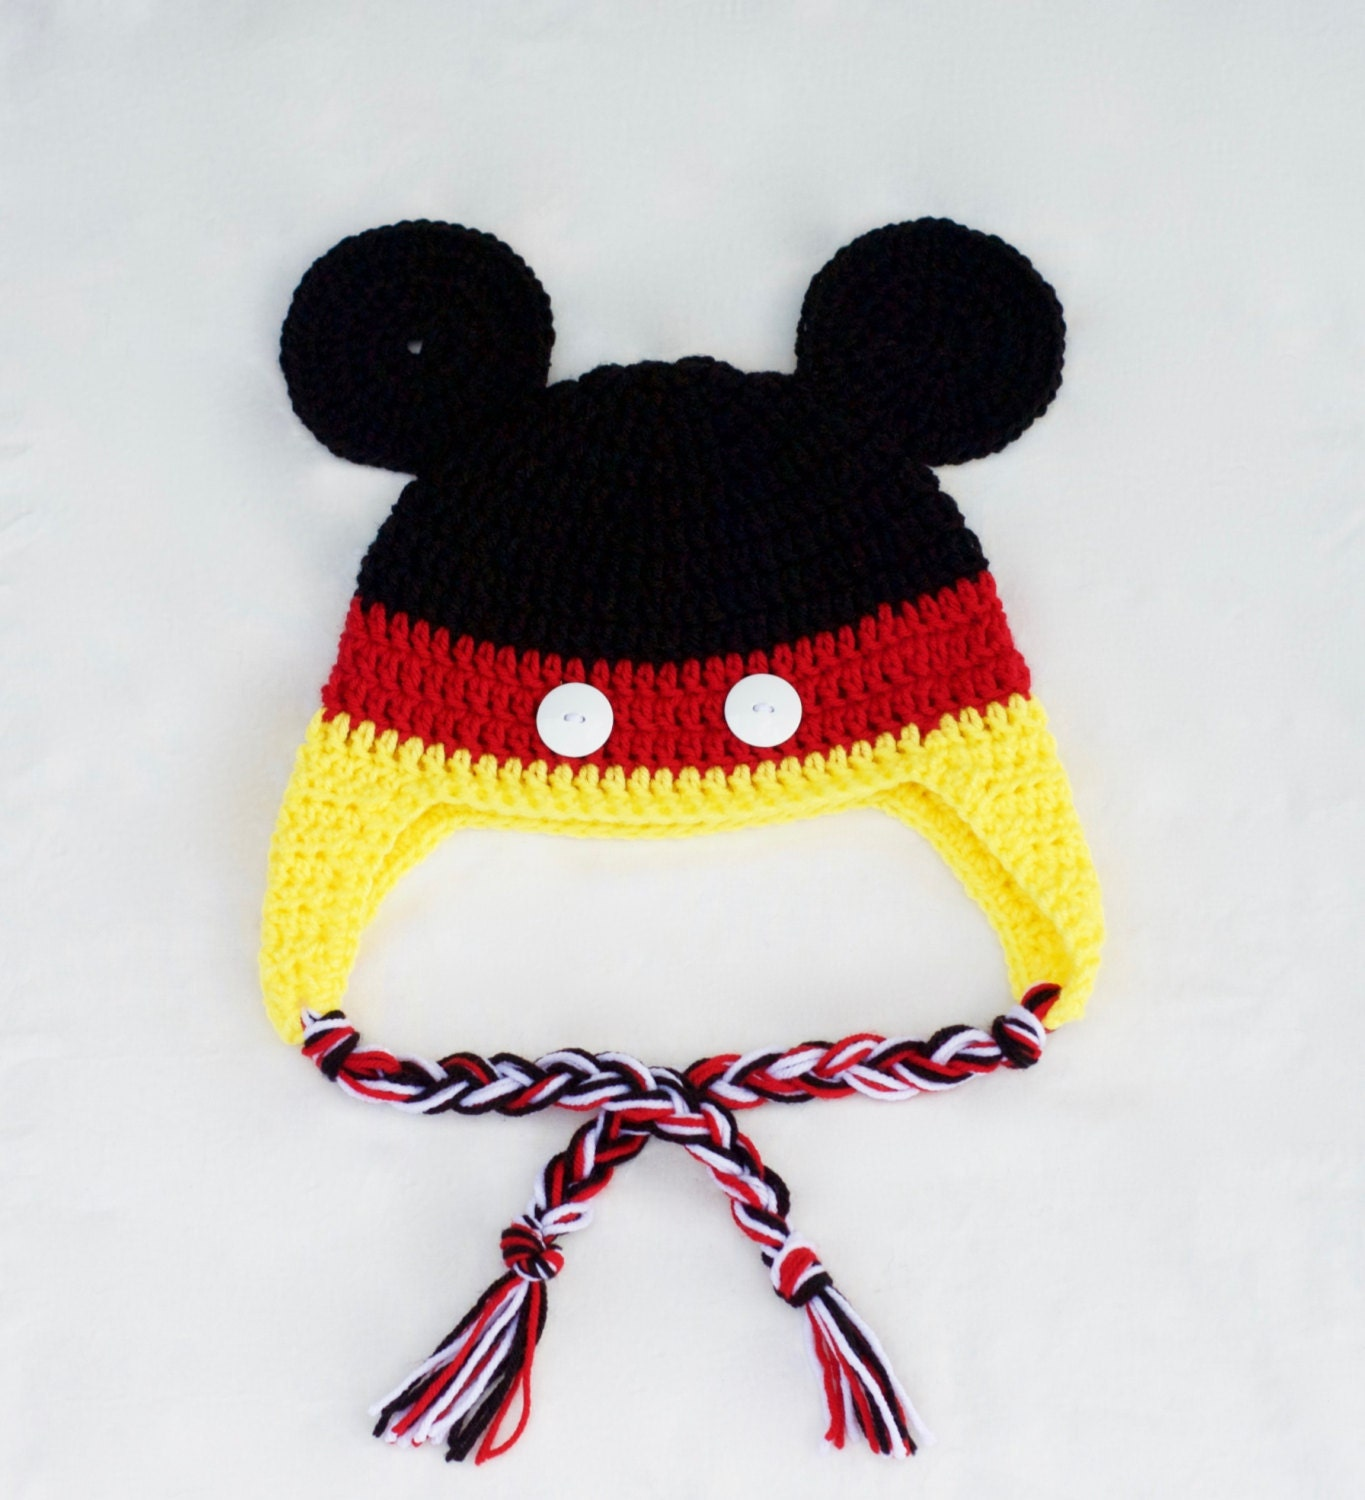 1d507d91 sweden crochet child hats 01ff7 394dd; canada crochet mickey mouse hat  disney inspired hat mickey mouse hat character hat 66979 0b3de